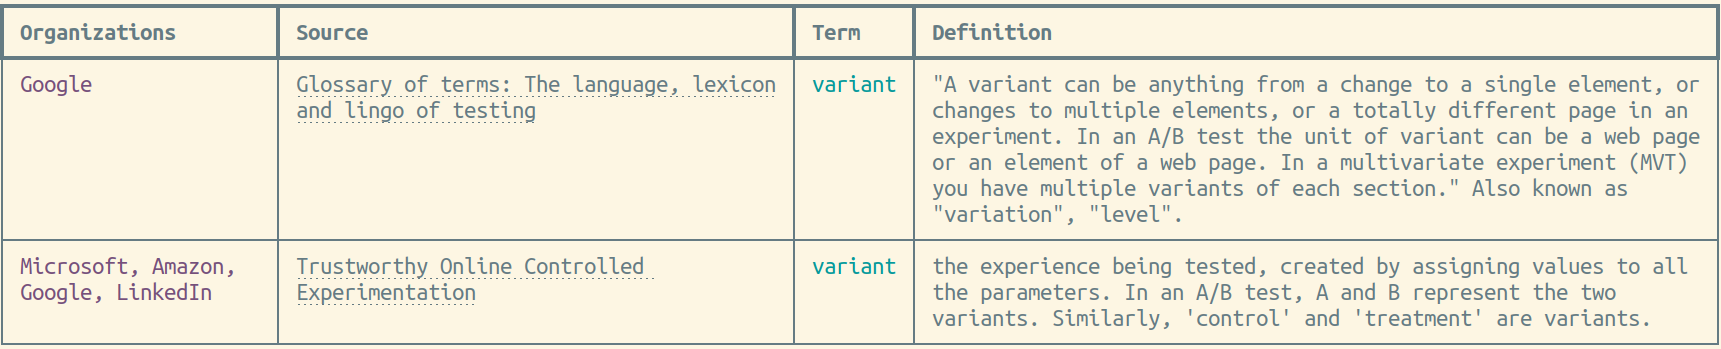 ABGlossary results for Google and 'variant'